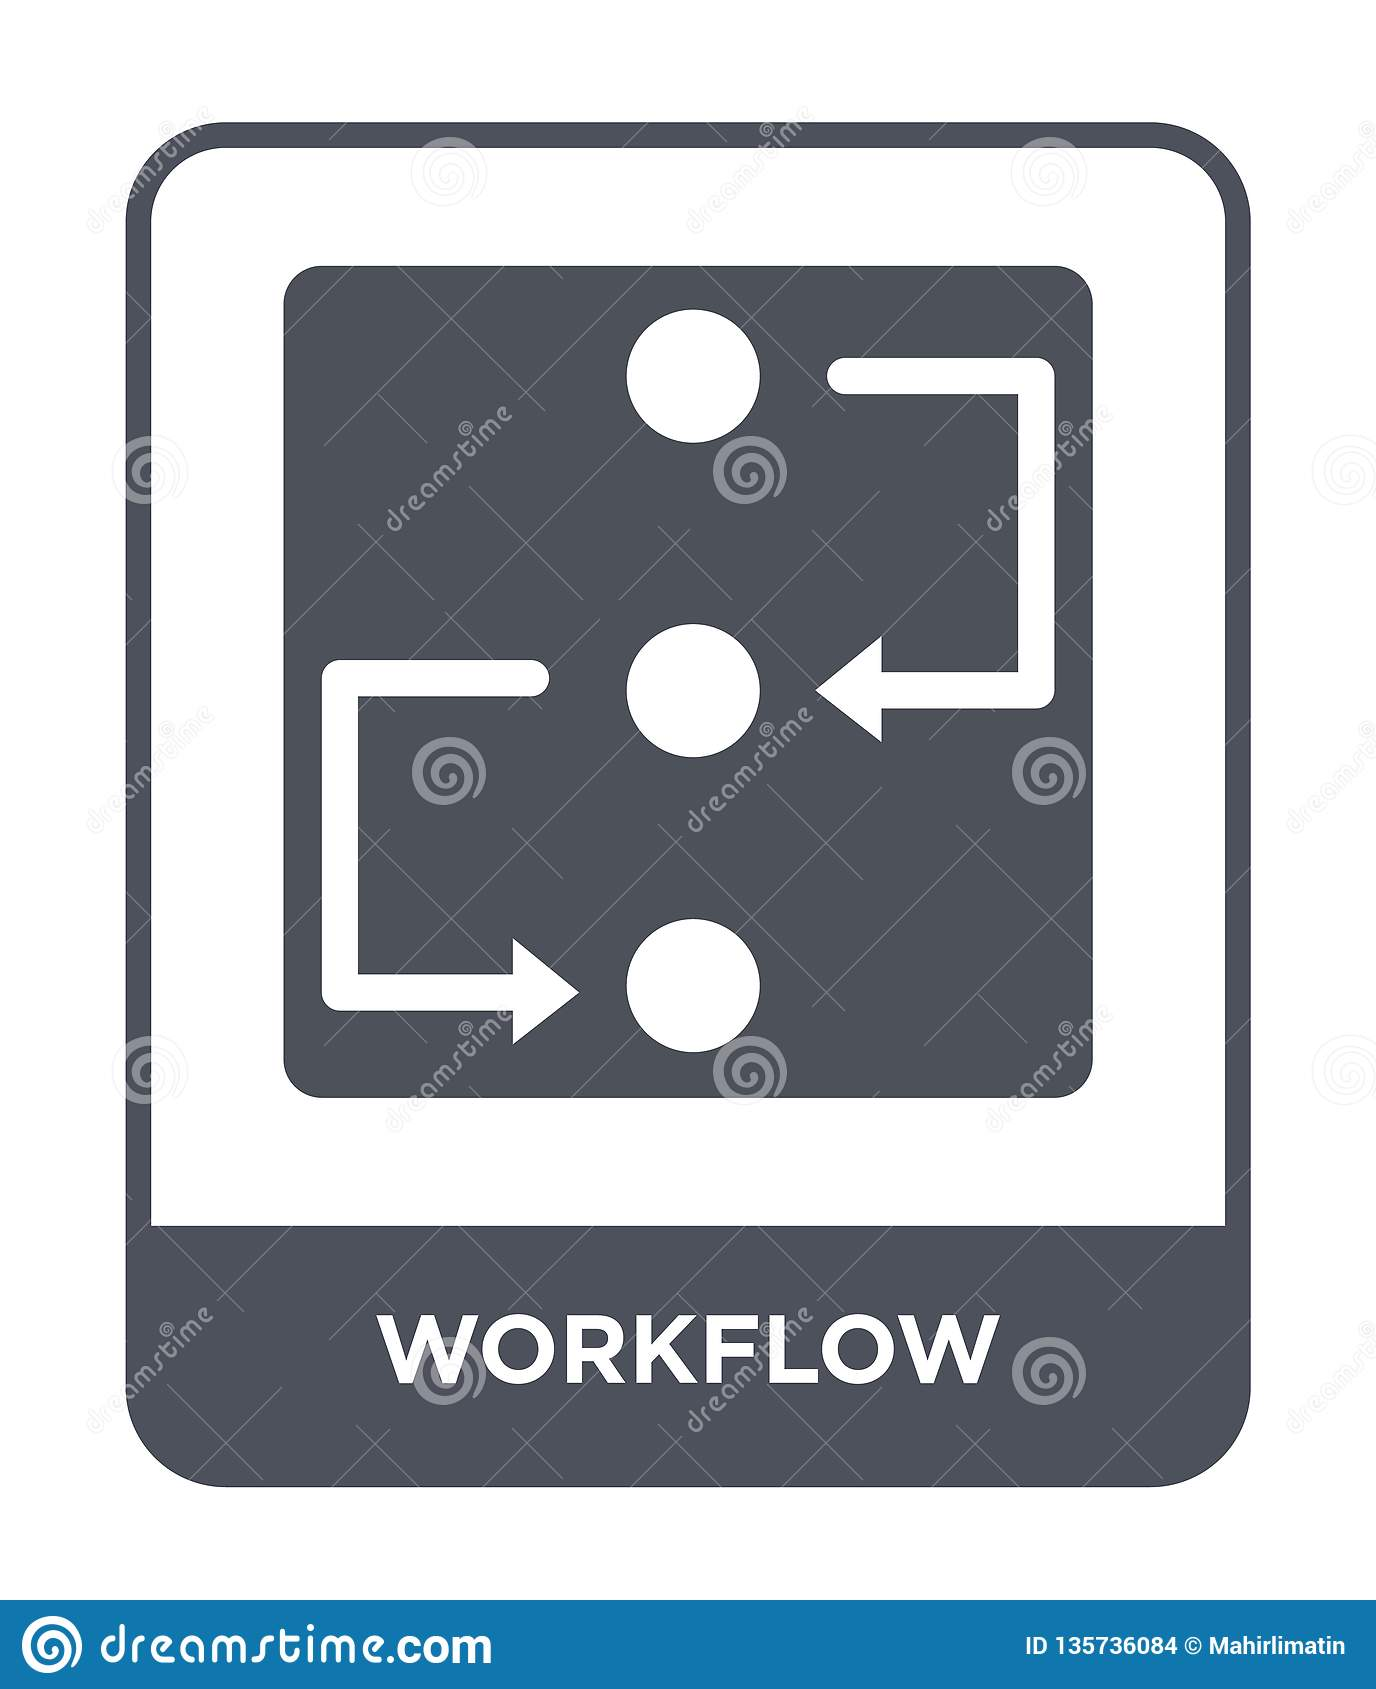 workflow icon in trendy design style. workflow icon isolated on white background. workflow vector icon simple and modern flat